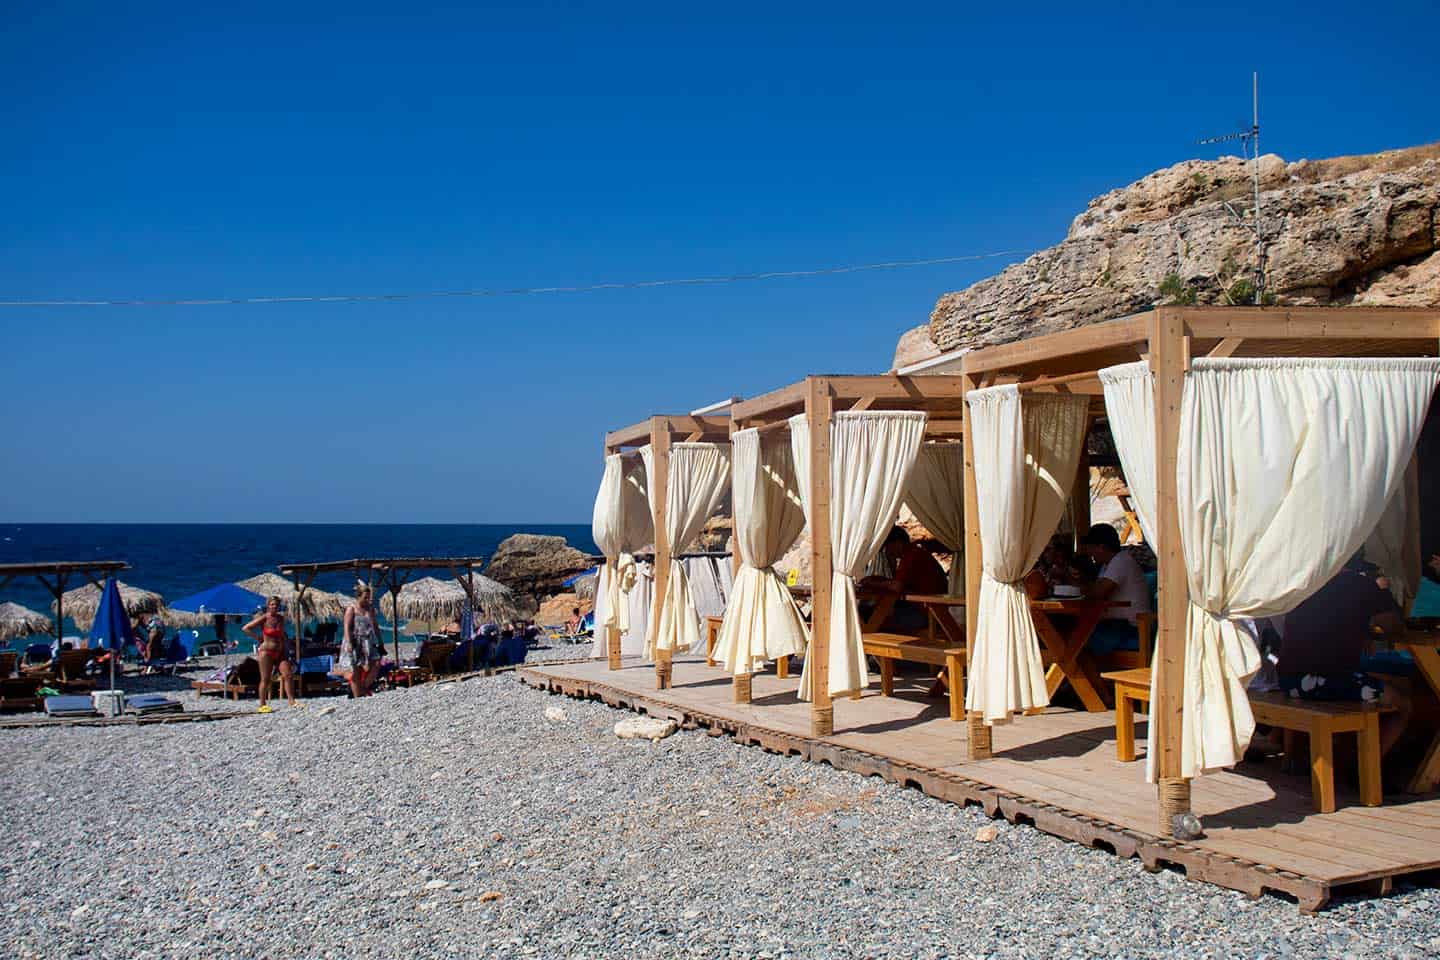 Image of the taverna at Spilies beach